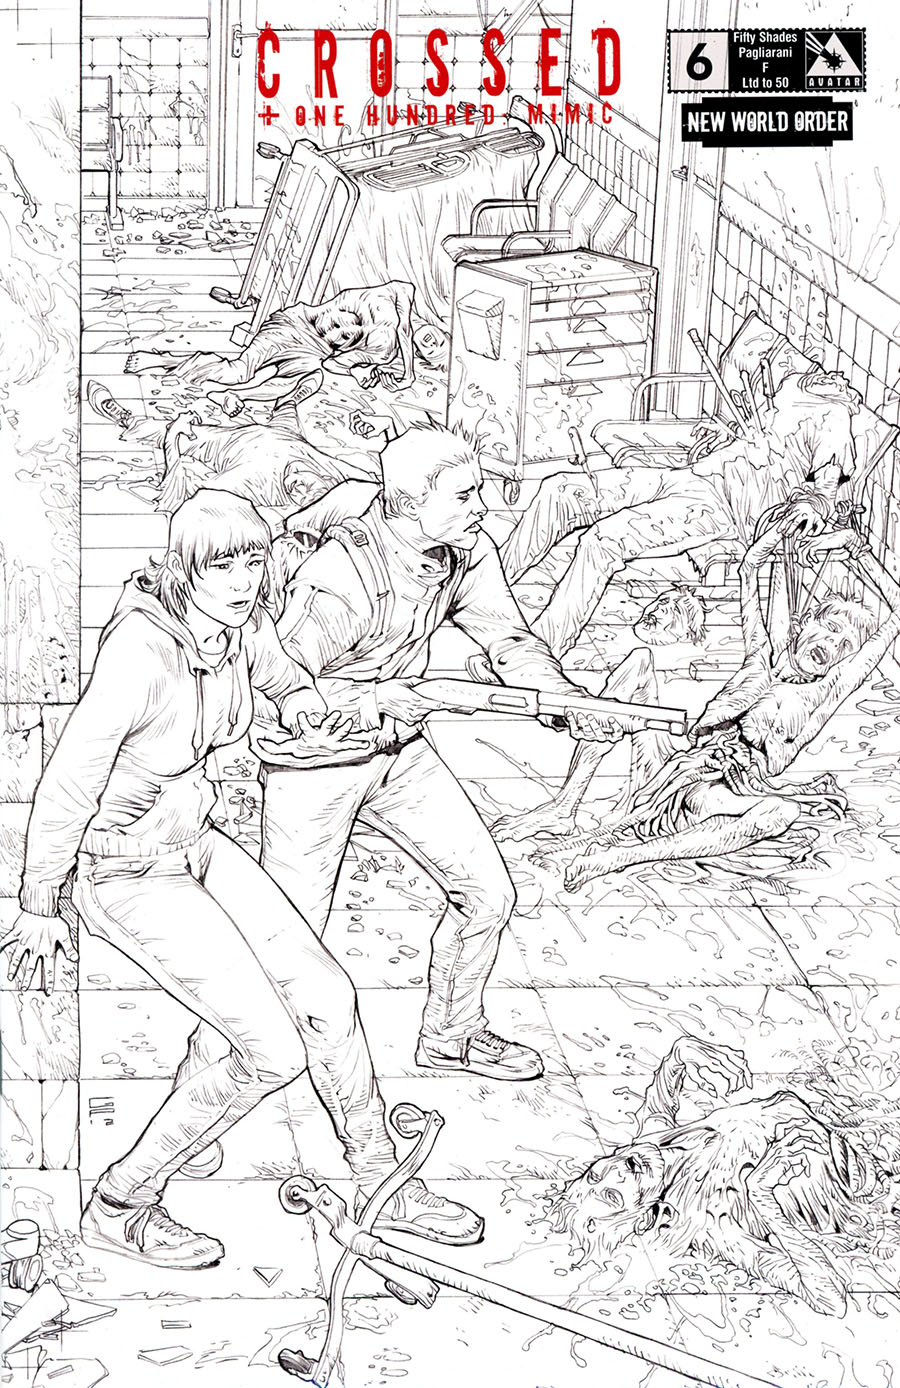 Crossed Plus 100 Mimic #6 Cover N NWO Fifty Shades F Cover